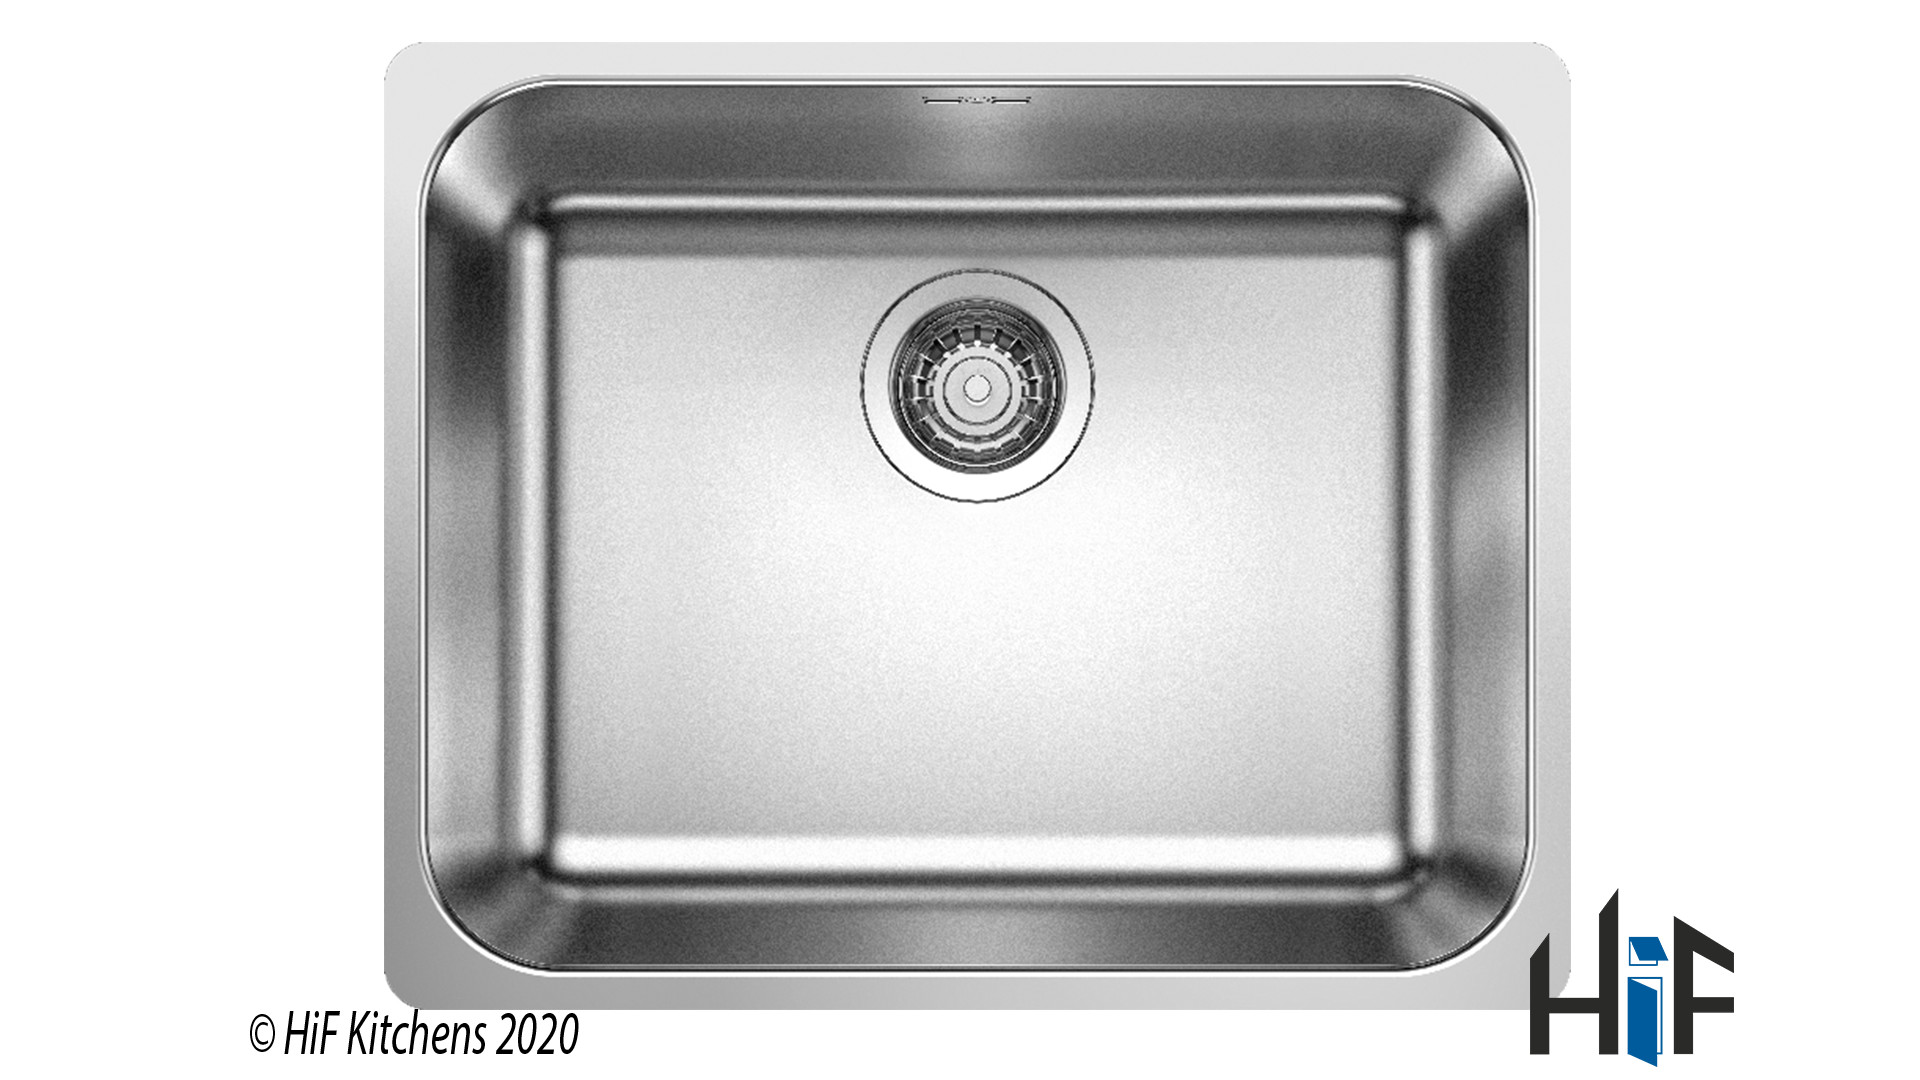 Blanco 455013 Supra 500-IF Sink Stainless